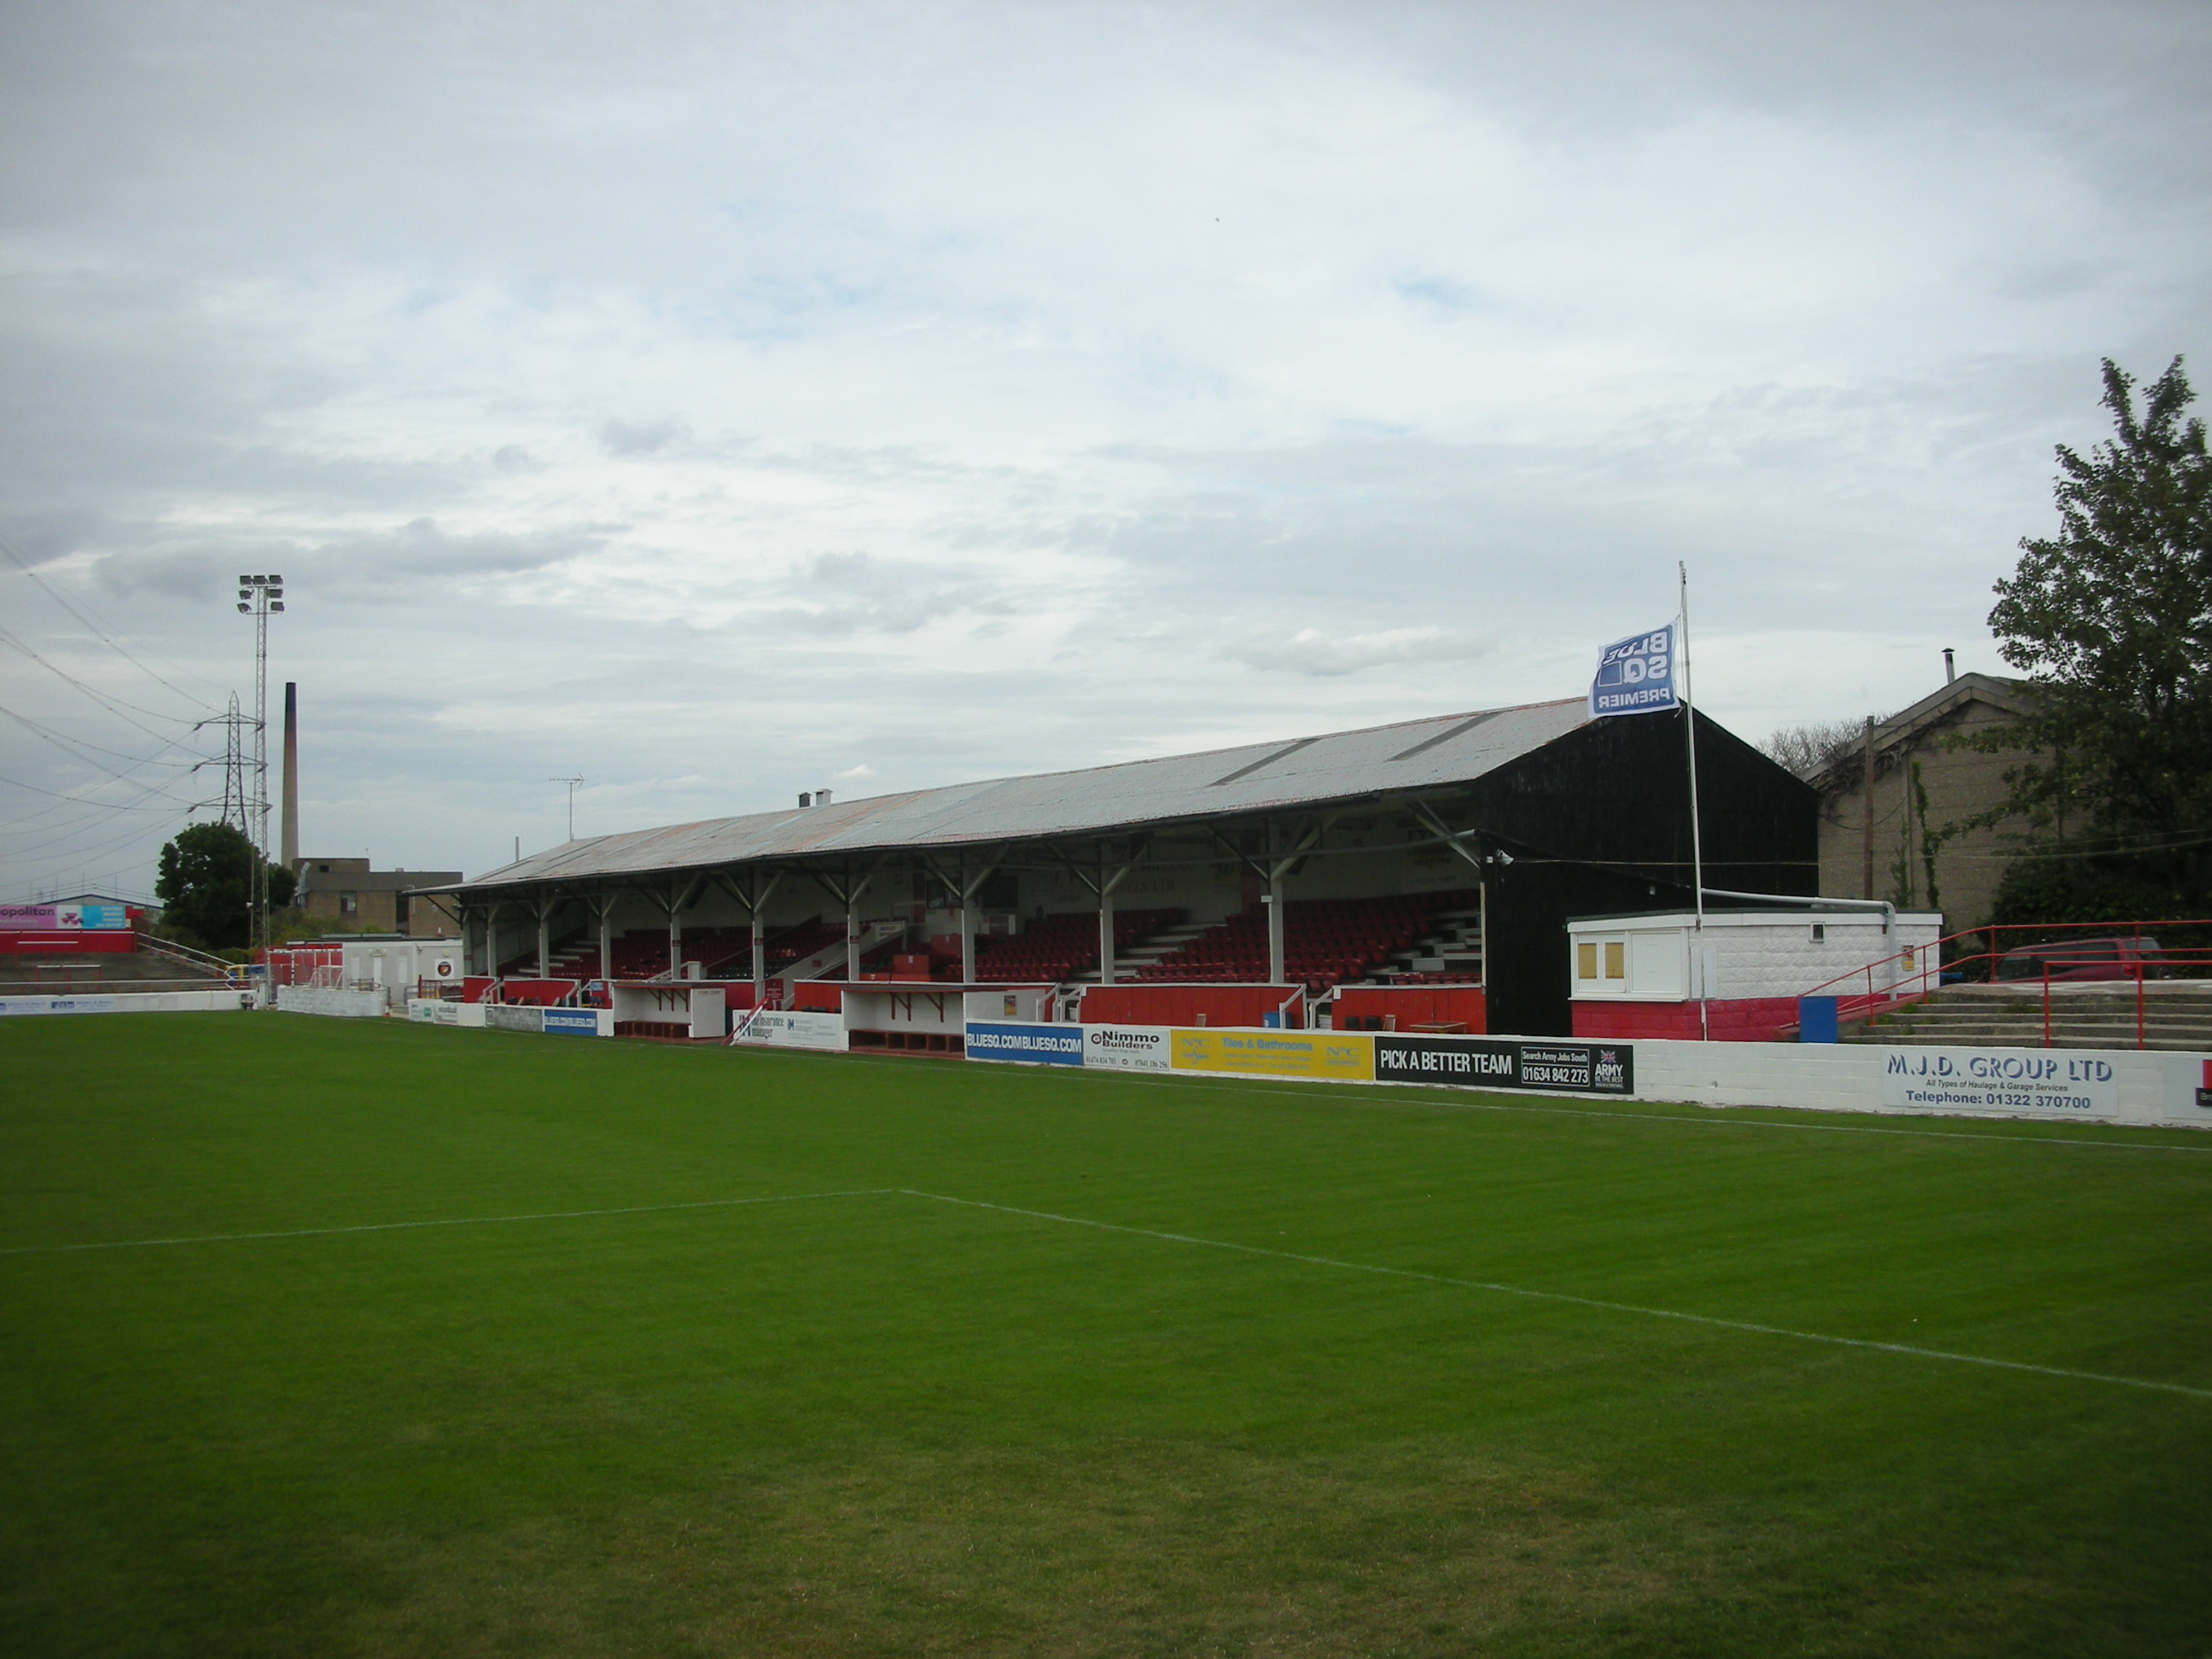 Polegrove sports ground